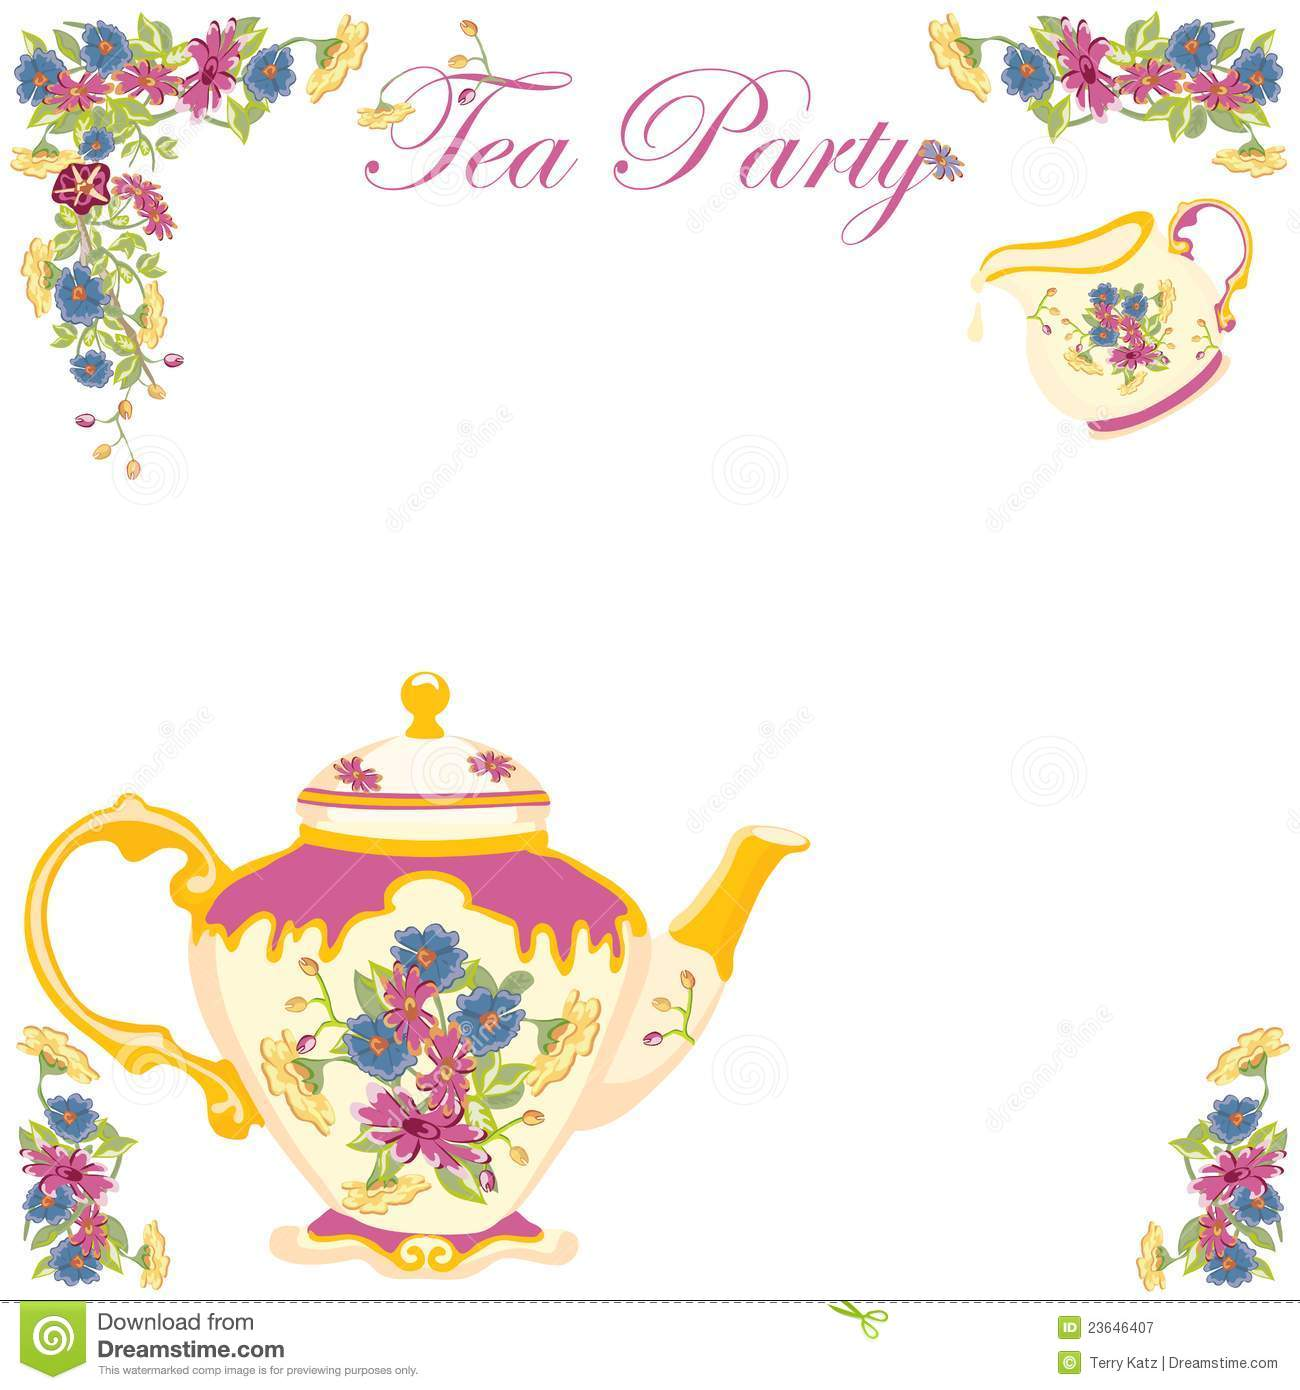 Afternoon tea party invitations mickey mouse invitations templates high tea invitation clipart tea party invitation monicamarmolfo Image collections